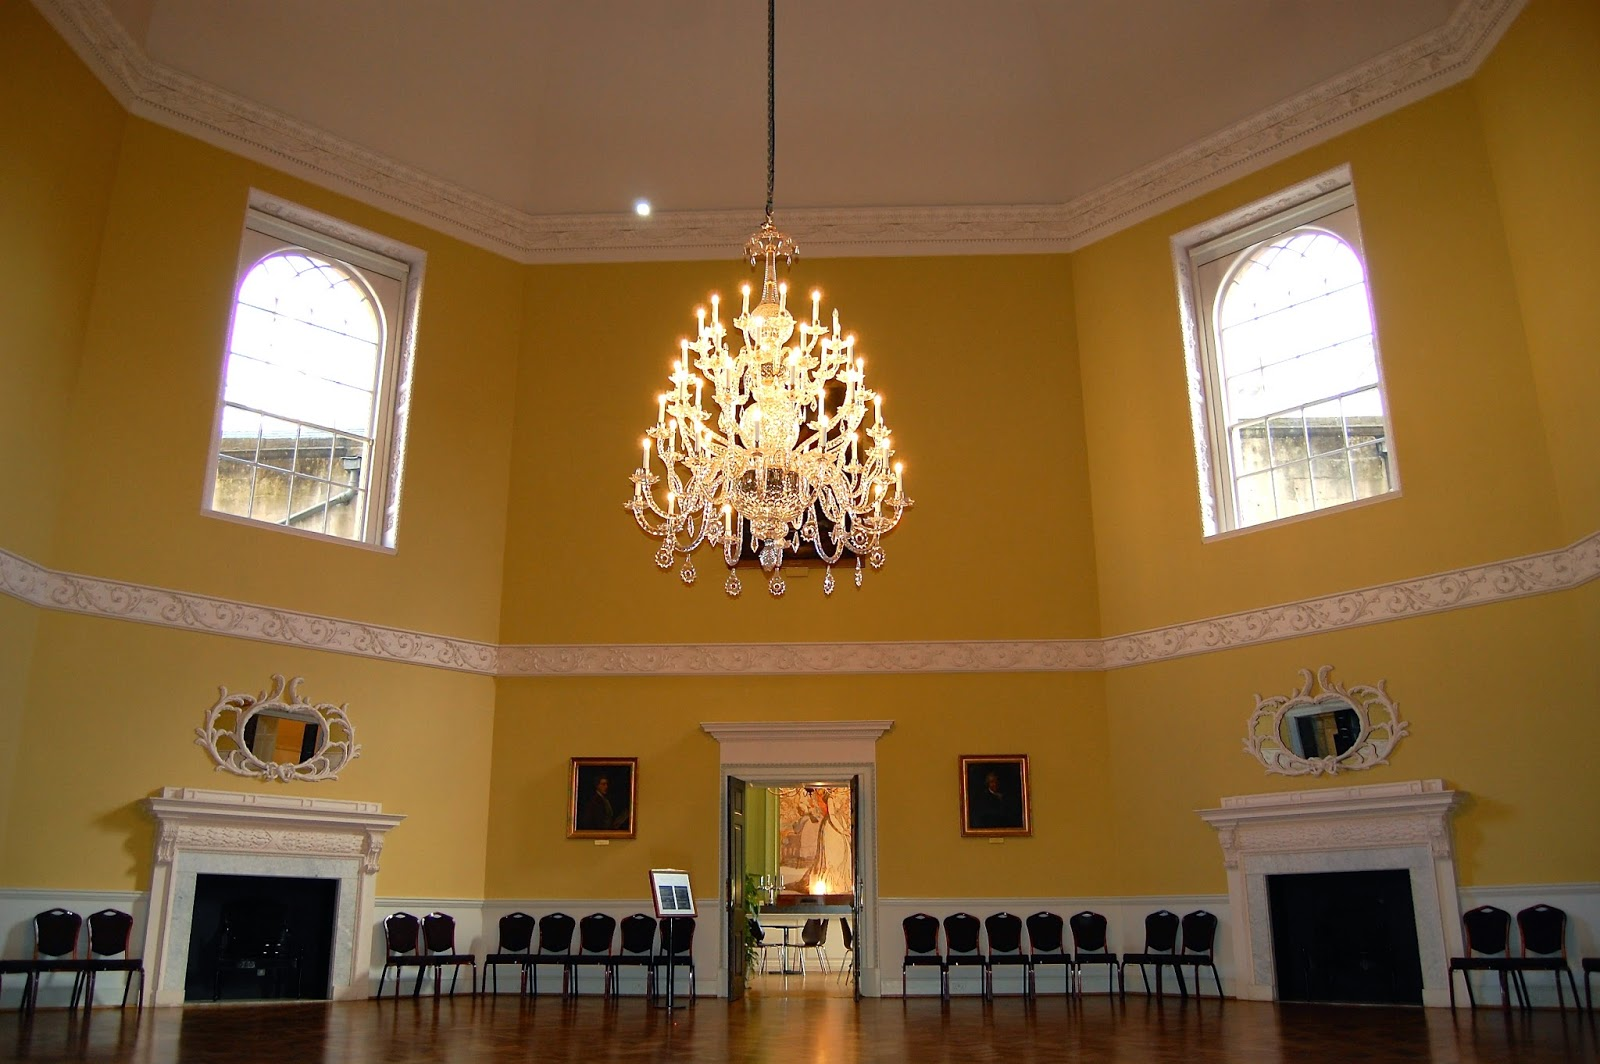 Octagonal room in the Assembly Rooms